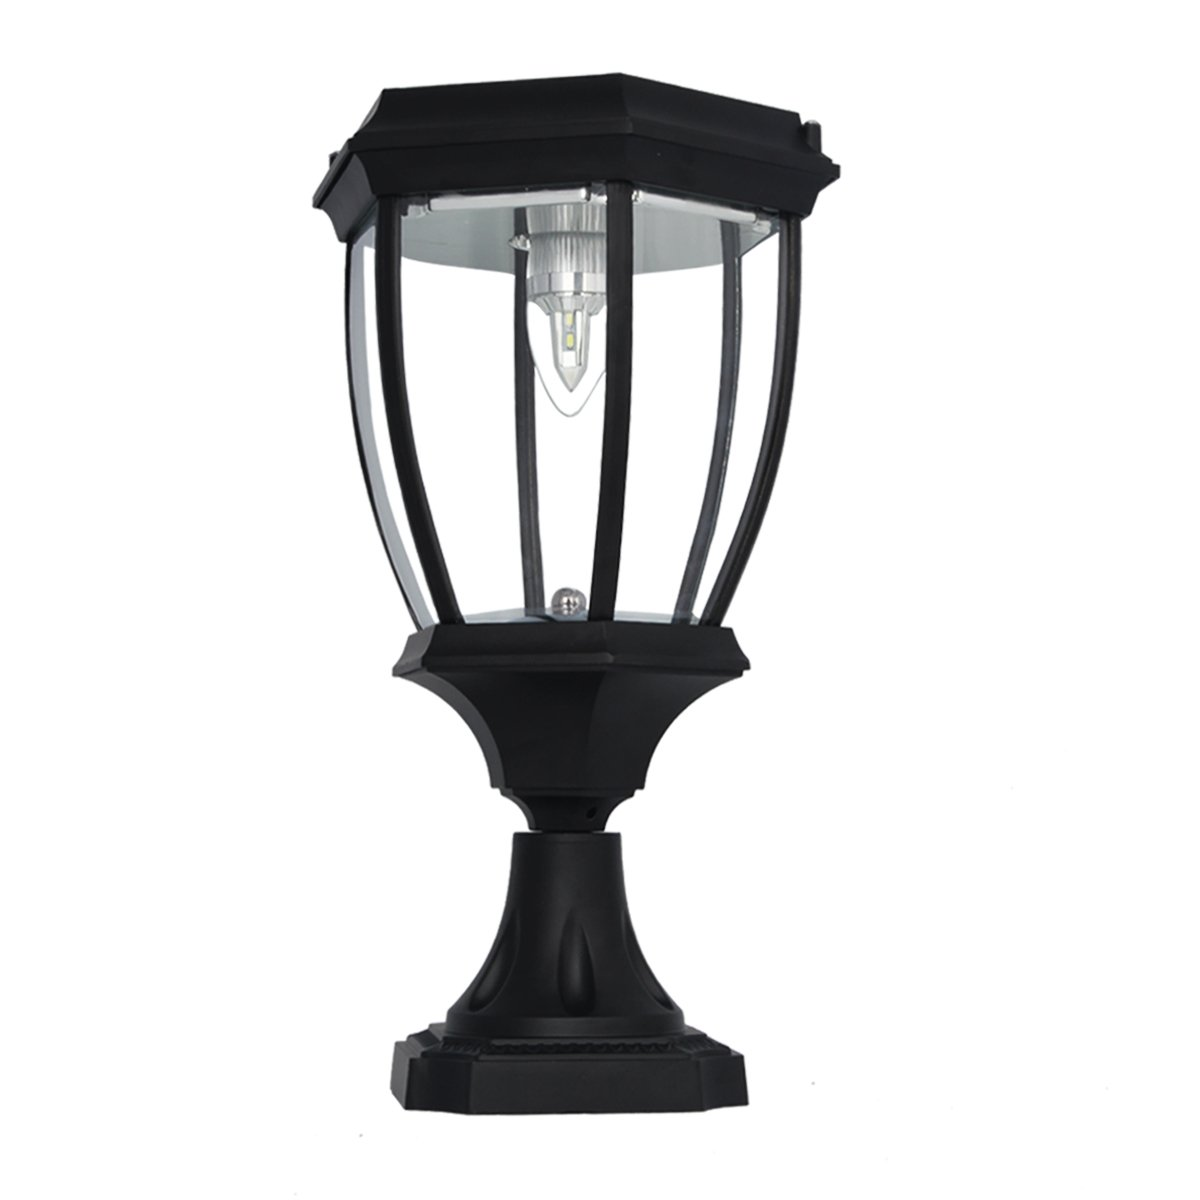 Kendal Large Outdoor Solar Powered LED Light Lamp SL-8405